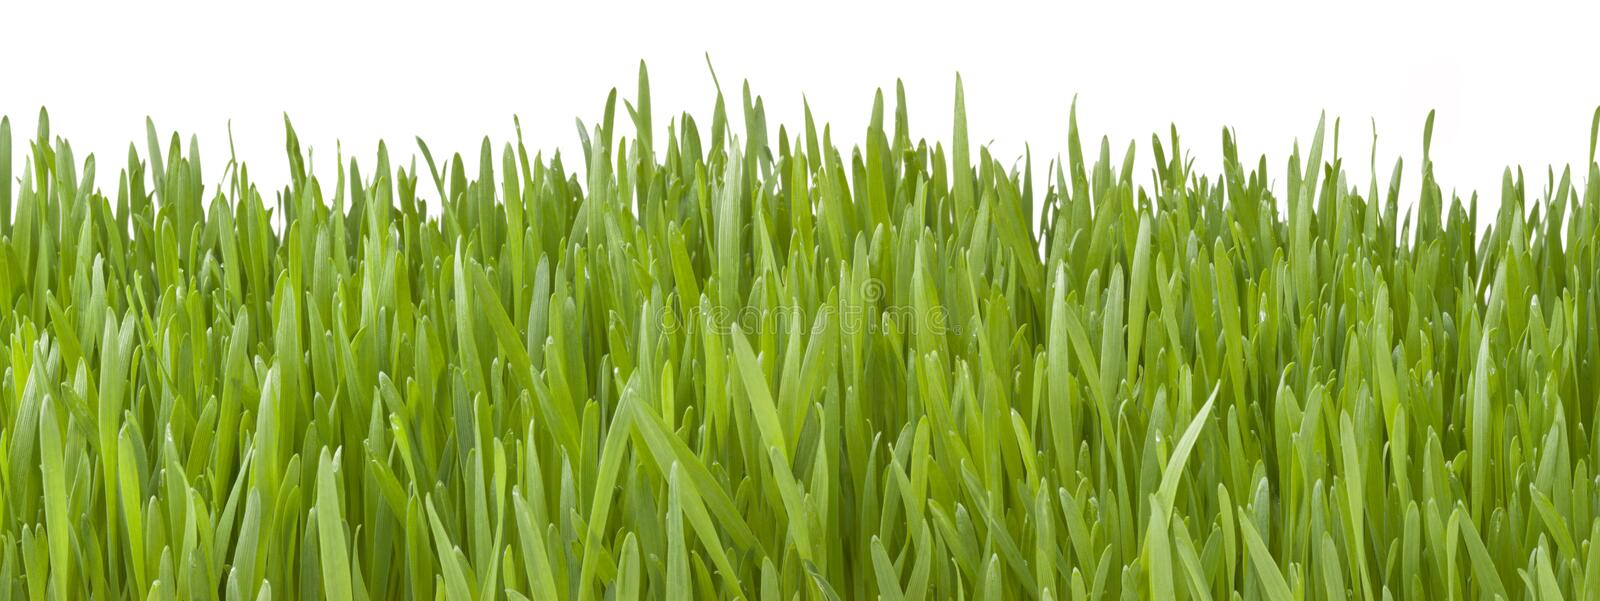 Banner Green Grass Background royalty free stock image